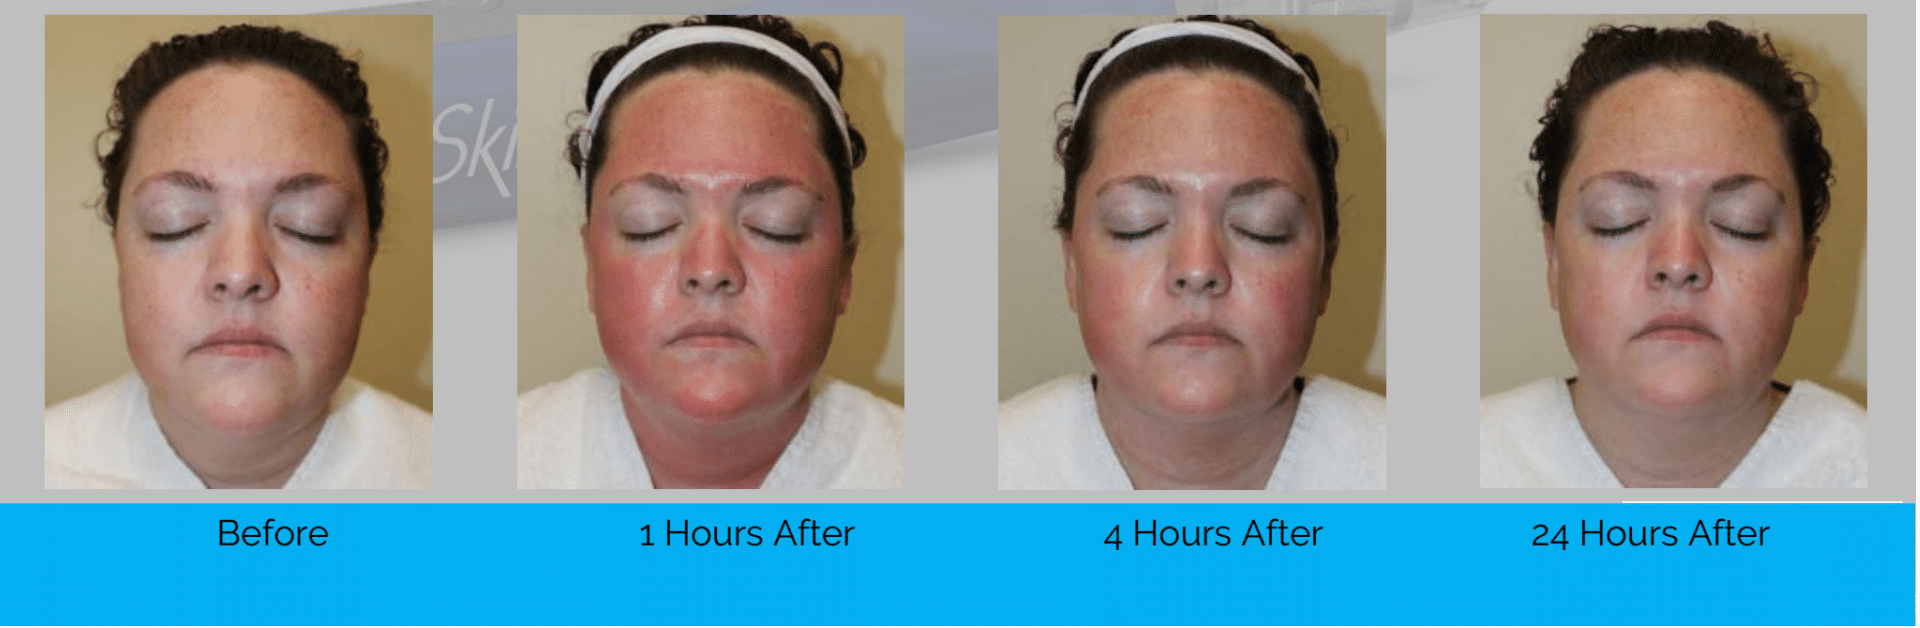 microneedling procedure using SkinPen images straight after 1